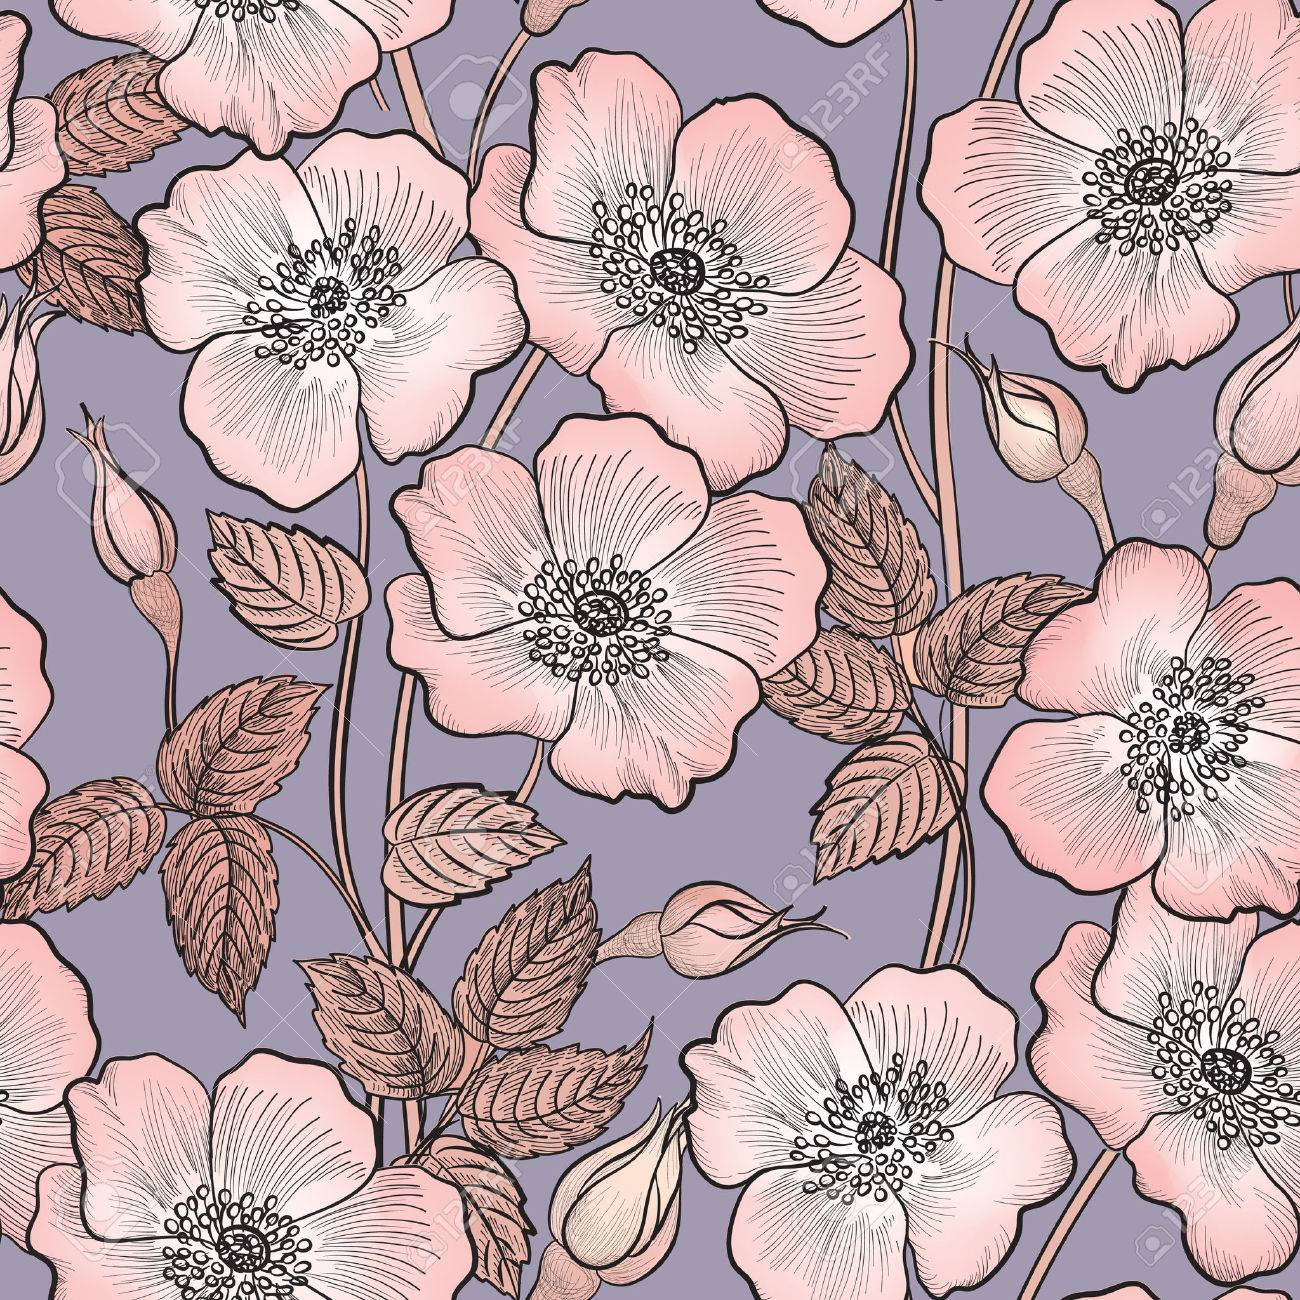 Floral seamless pattern. Flower background. Floral seamless texture with flowers. Stock Vector - 43150042